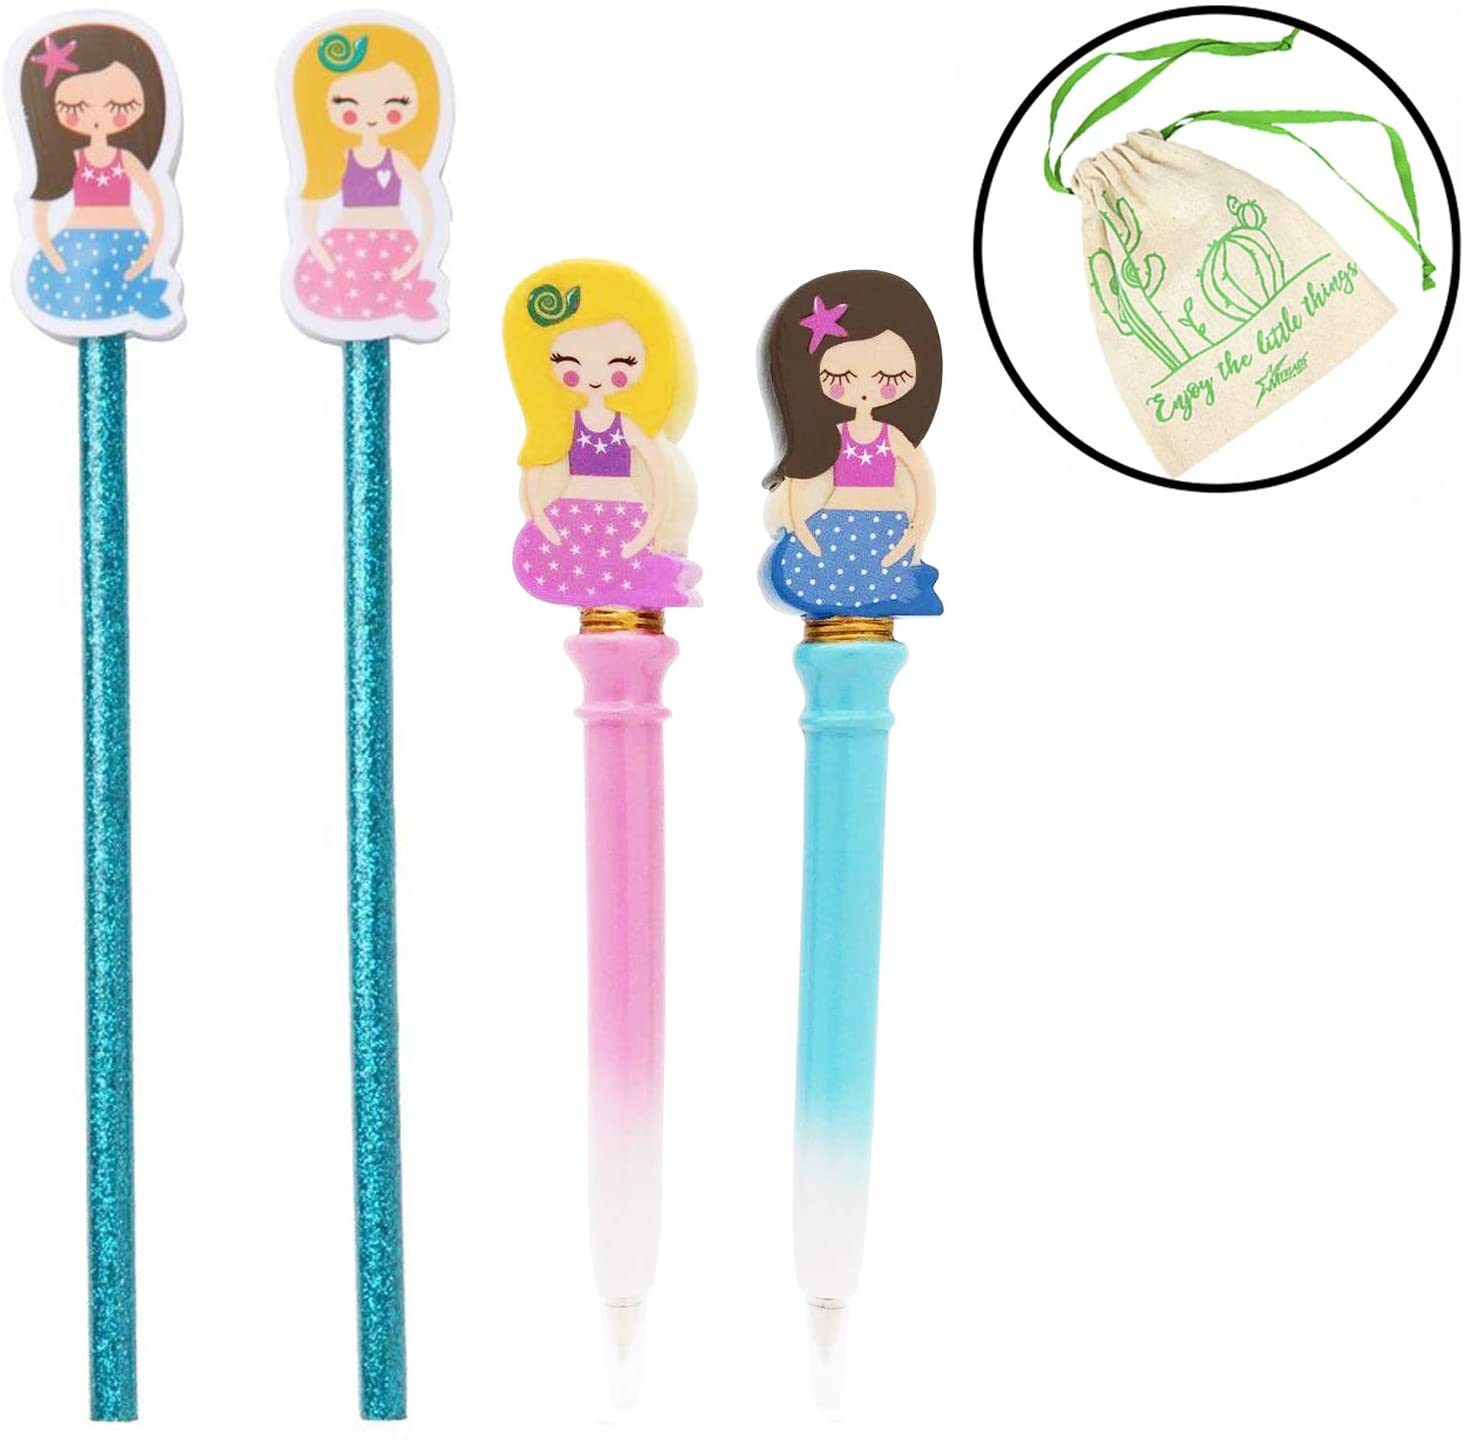 Streamline Mermaids Writing Set, Includes 2 Glitter Pencils with Mermaid Eraser Toppers, and 2 Mermaid Pens